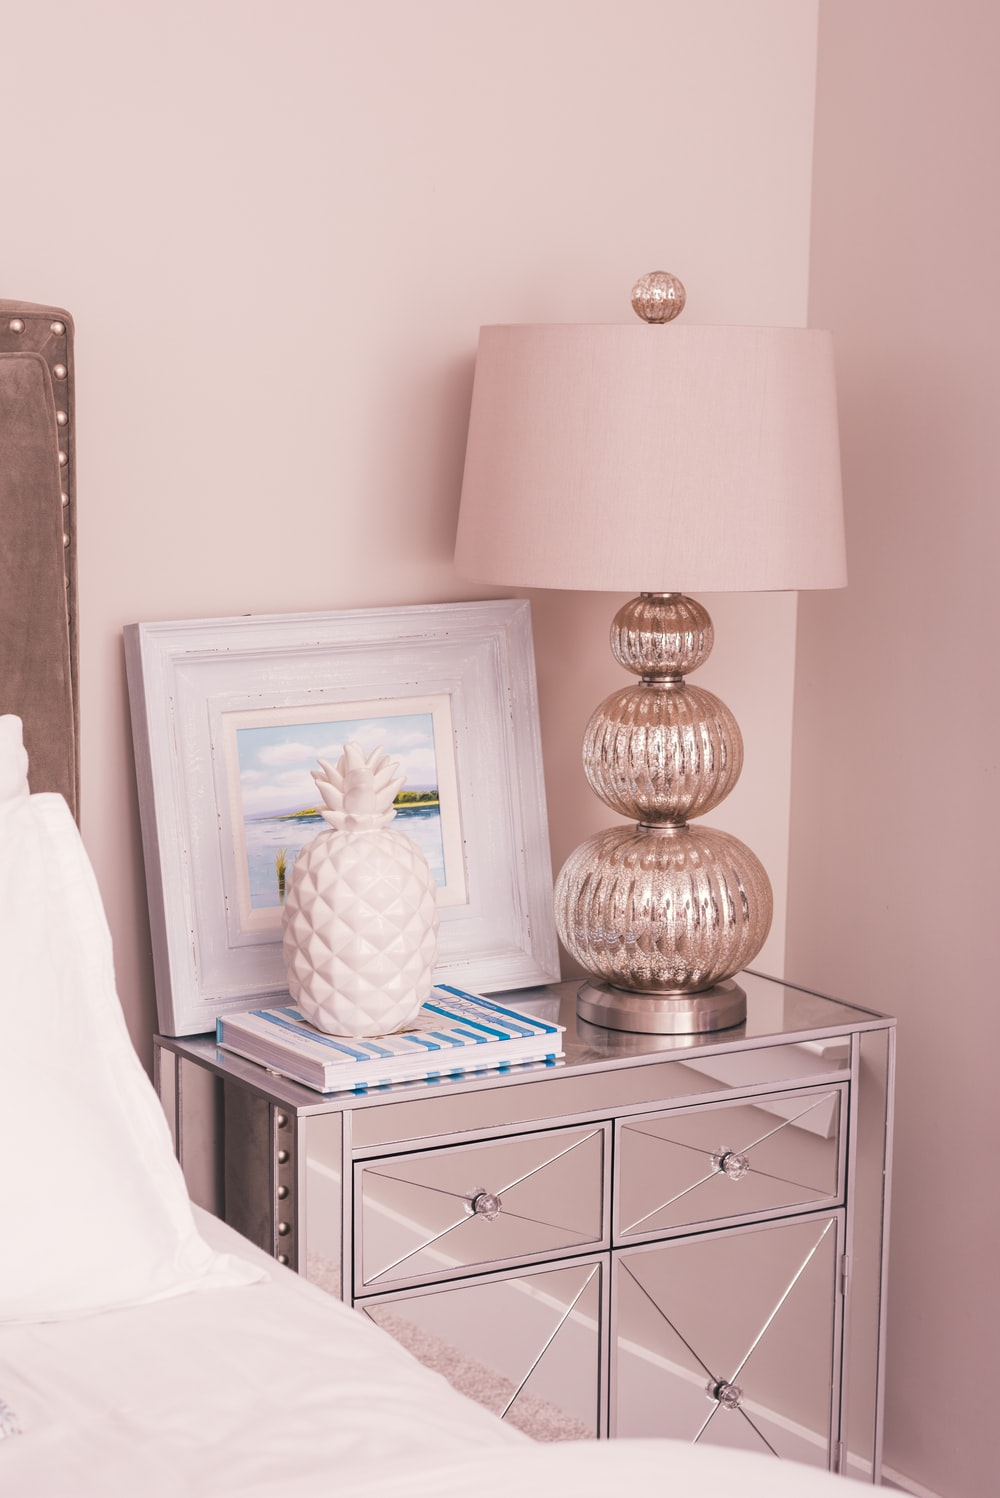 white and silver-colored table lamp